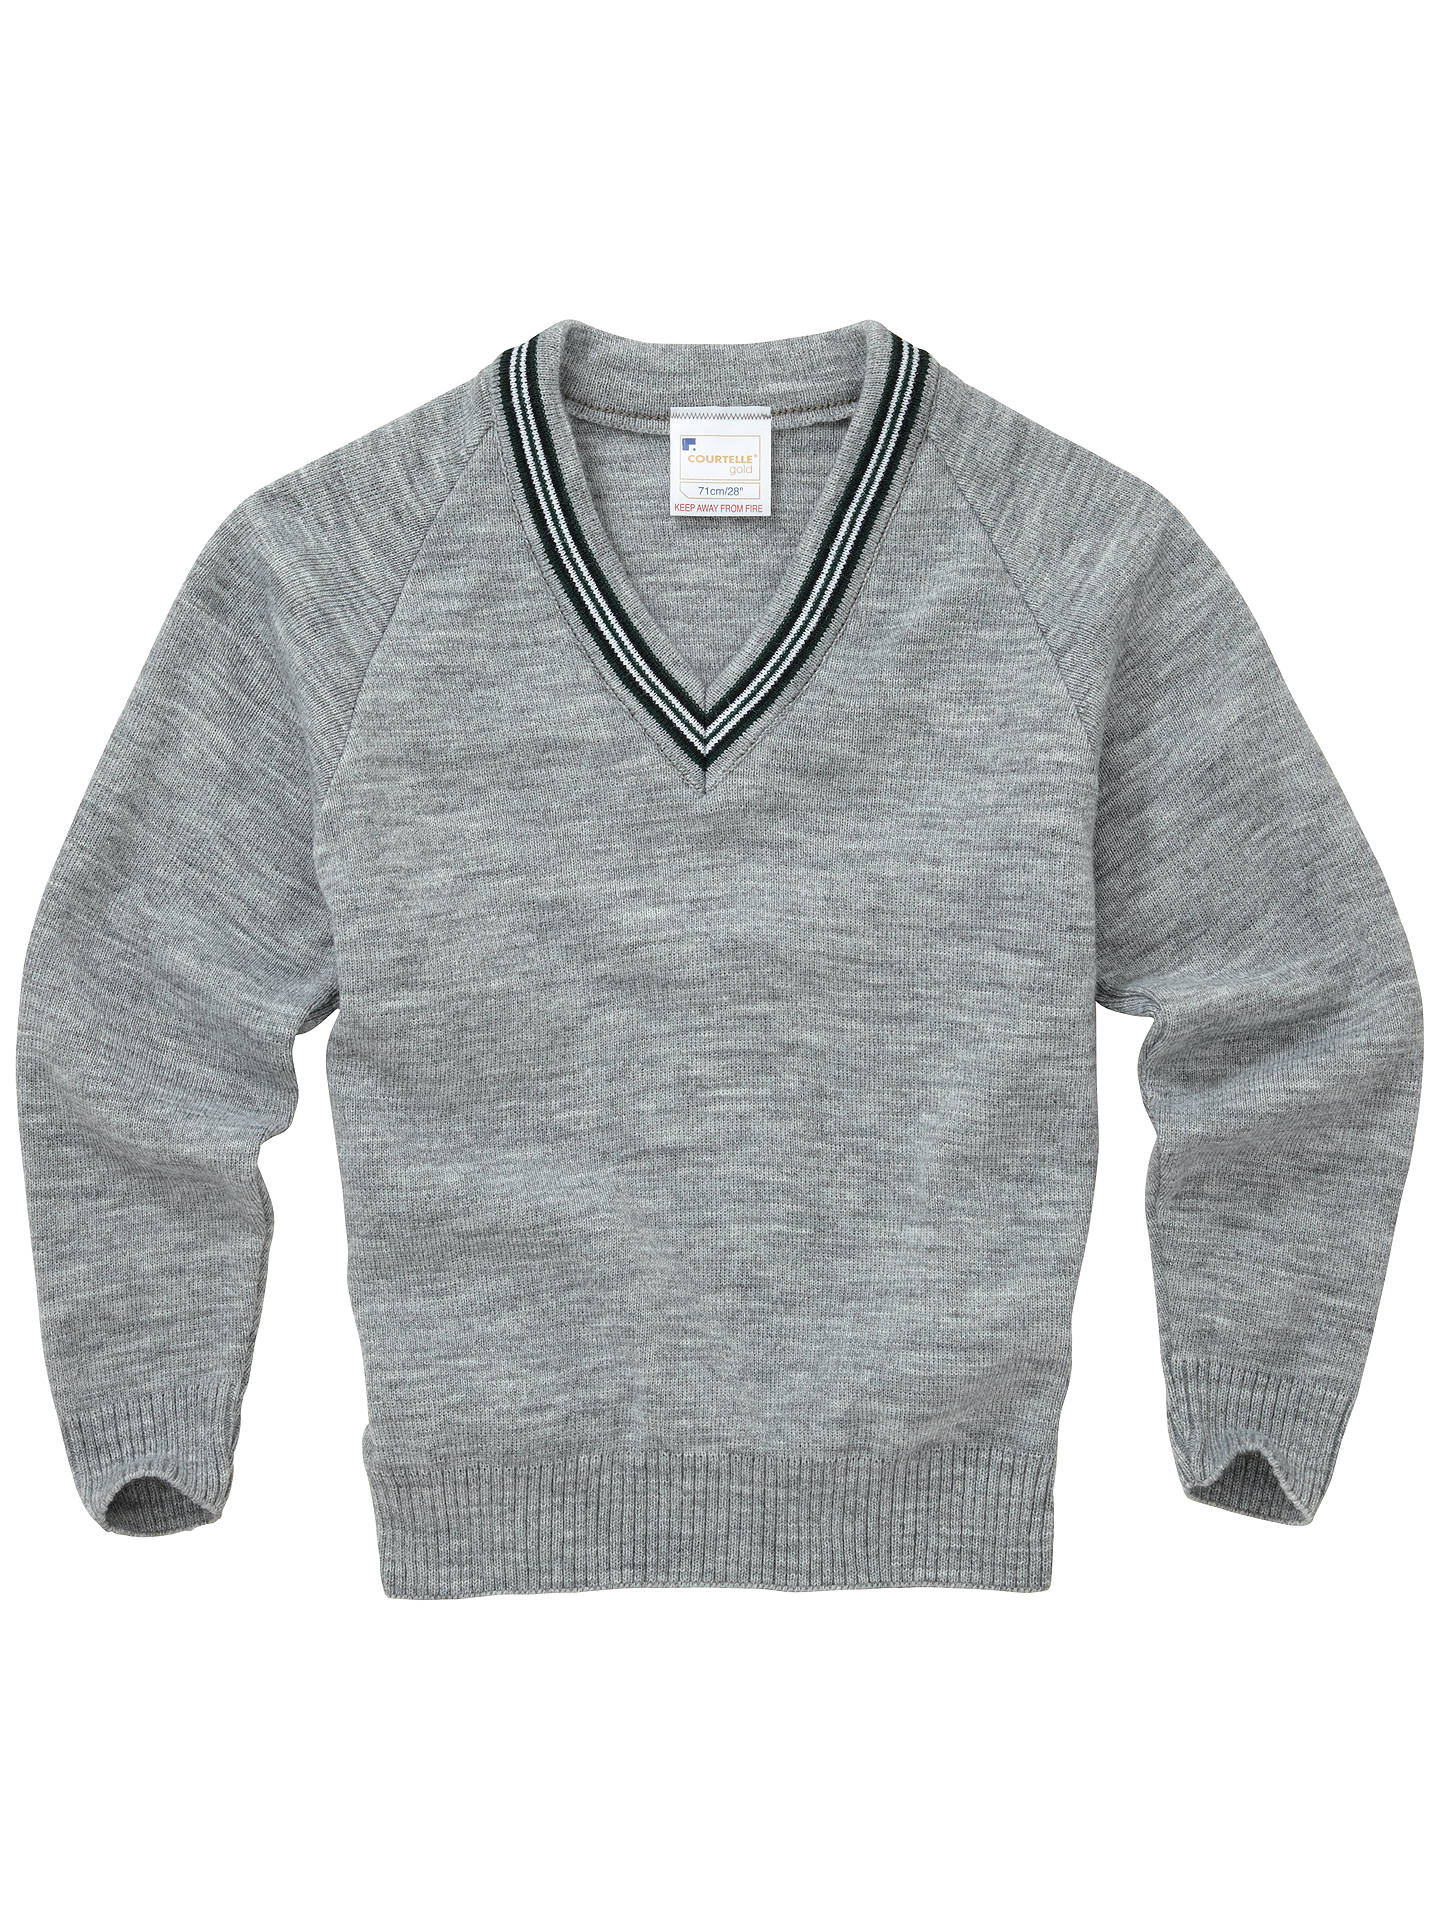 BuyLenzie Primary School Unisex Pullover, Grey, Chest 26 Online at johnlewis.com